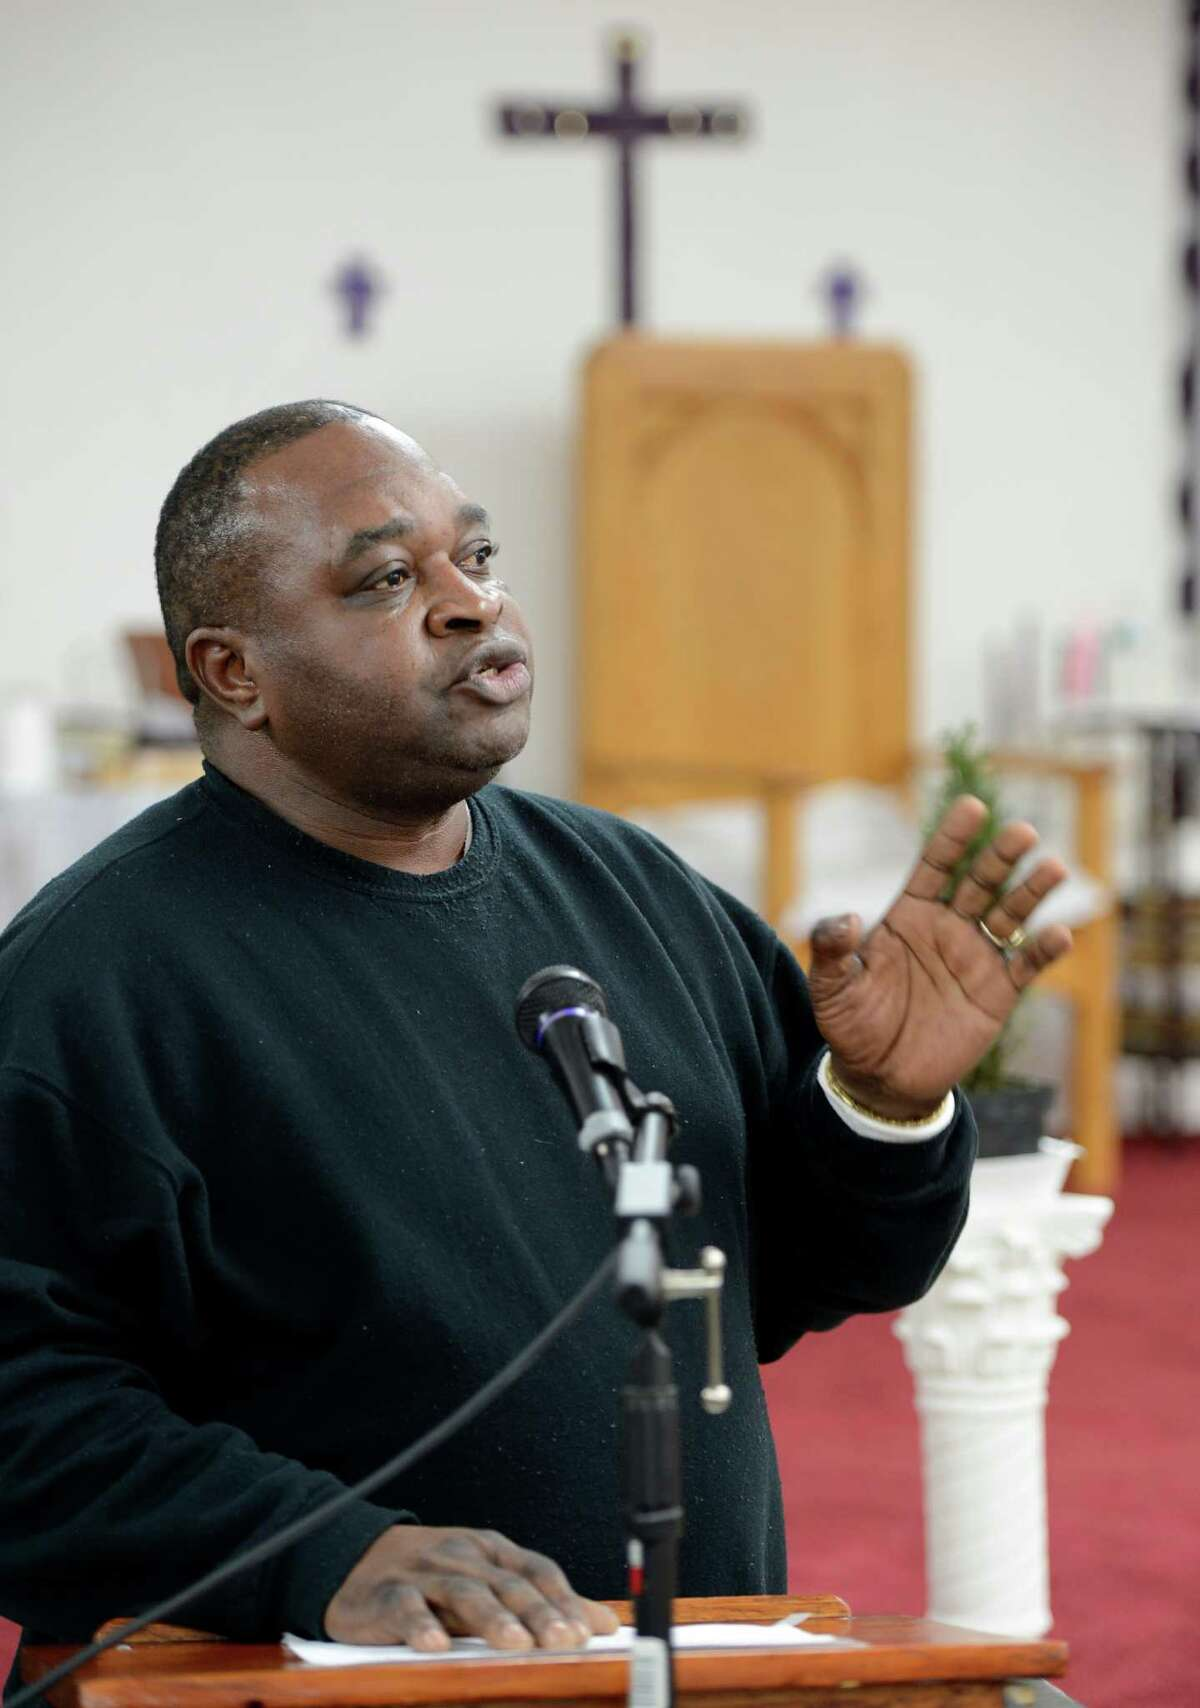 Pastor Willie D. Bacote leads the gathering in prayer on Martin Luther King Jr. Day Jan. 21, 2013 at the Missing Link Street AME Zion Church in Troy, N.Y. (Skip Dickstein/Times Union)